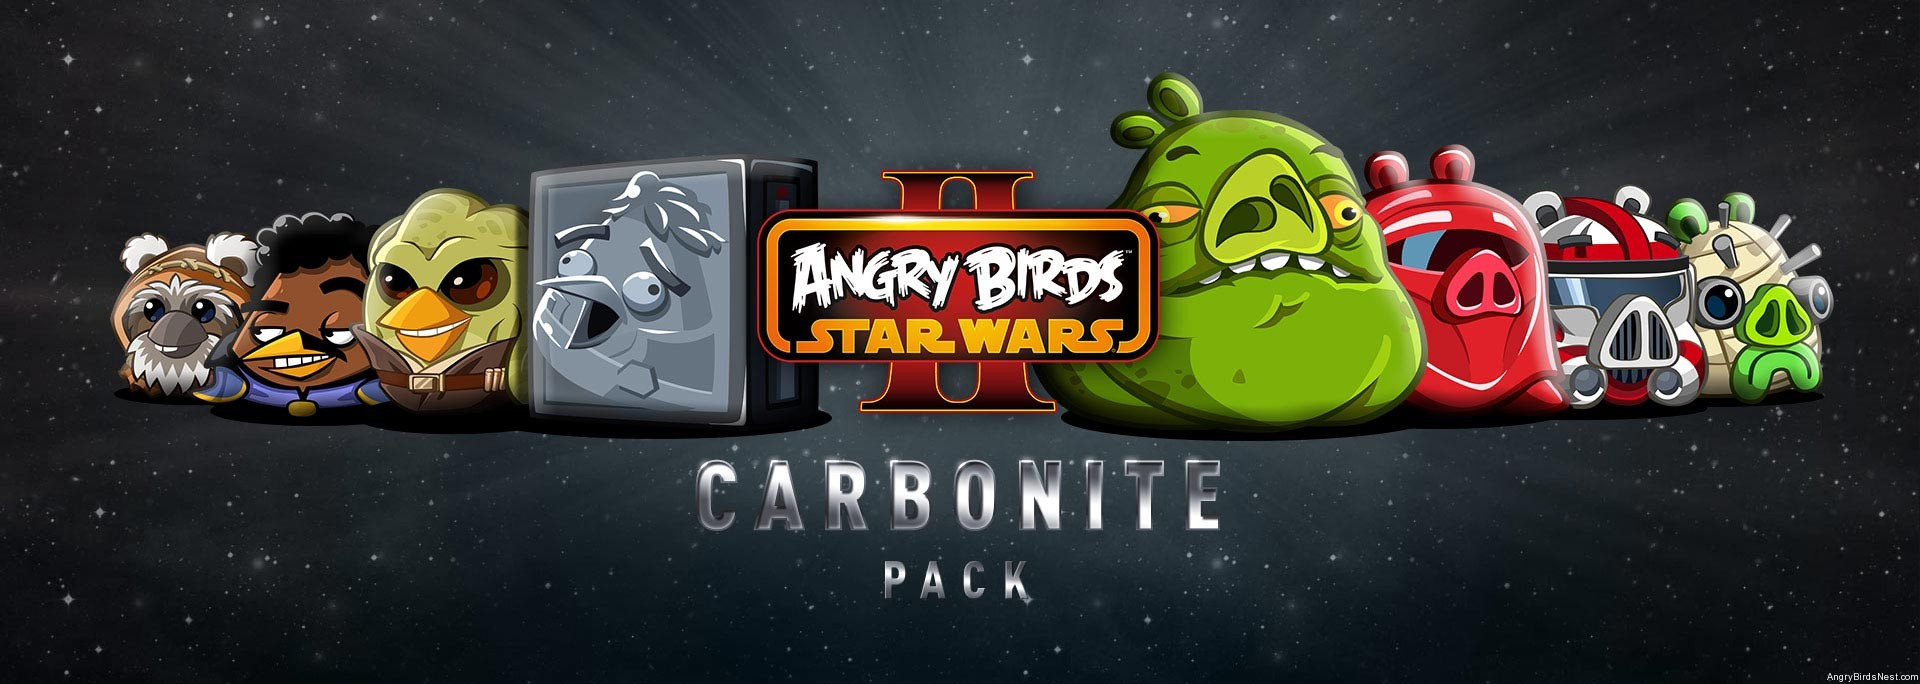 Angry Birds Star Wars Ii Carbonite Pack Update Now Available Angrybirdsnest